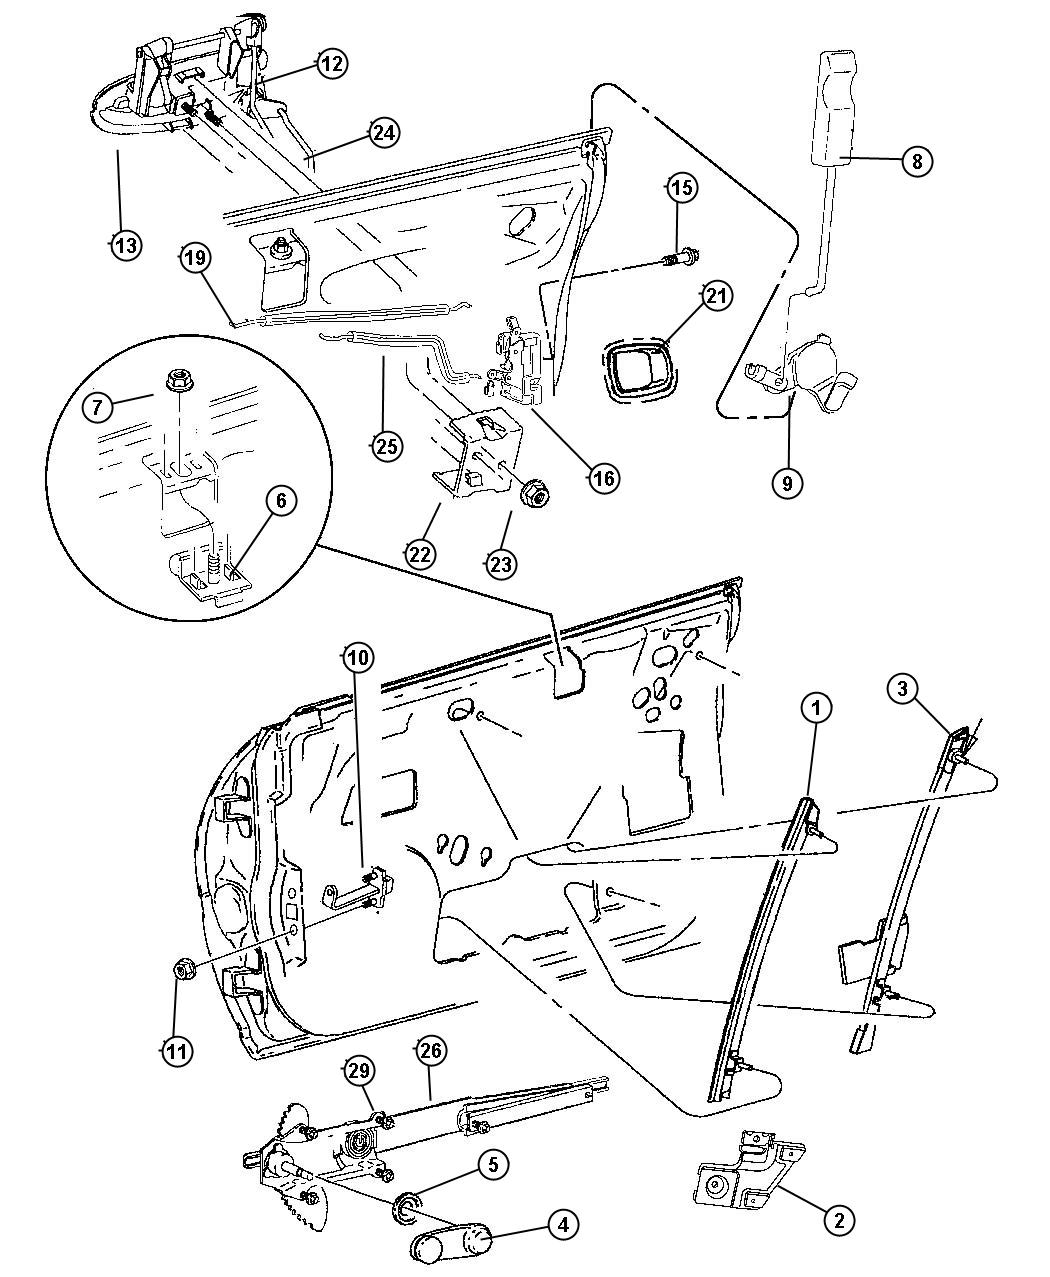 1998 dodge neon wiring diagram liver and spleen 2 0l engine imageresizertool com